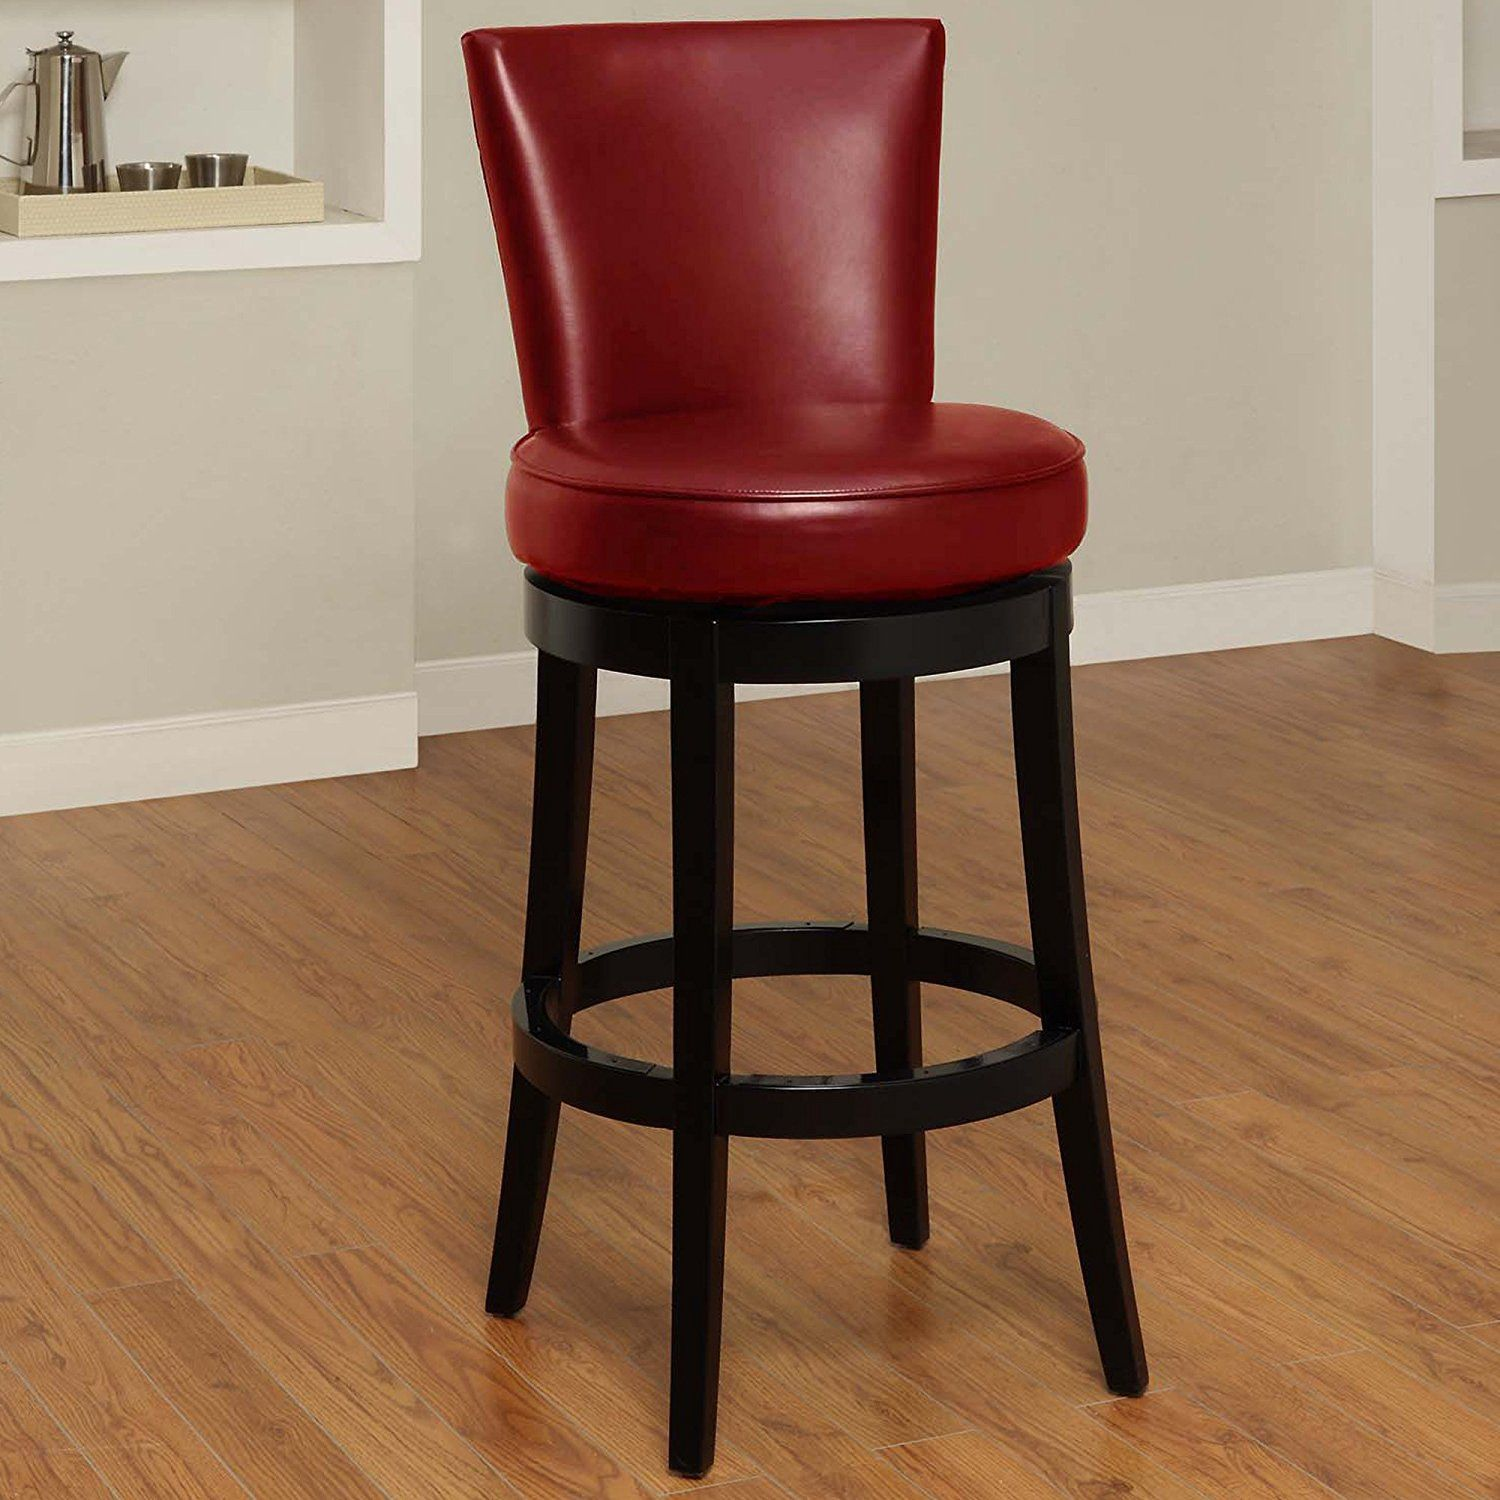 Sensational Amazon Com Legacy Commercial Swivel Barstool In Bicast Gmtry Best Dining Table And Chair Ideas Images Gmtryco